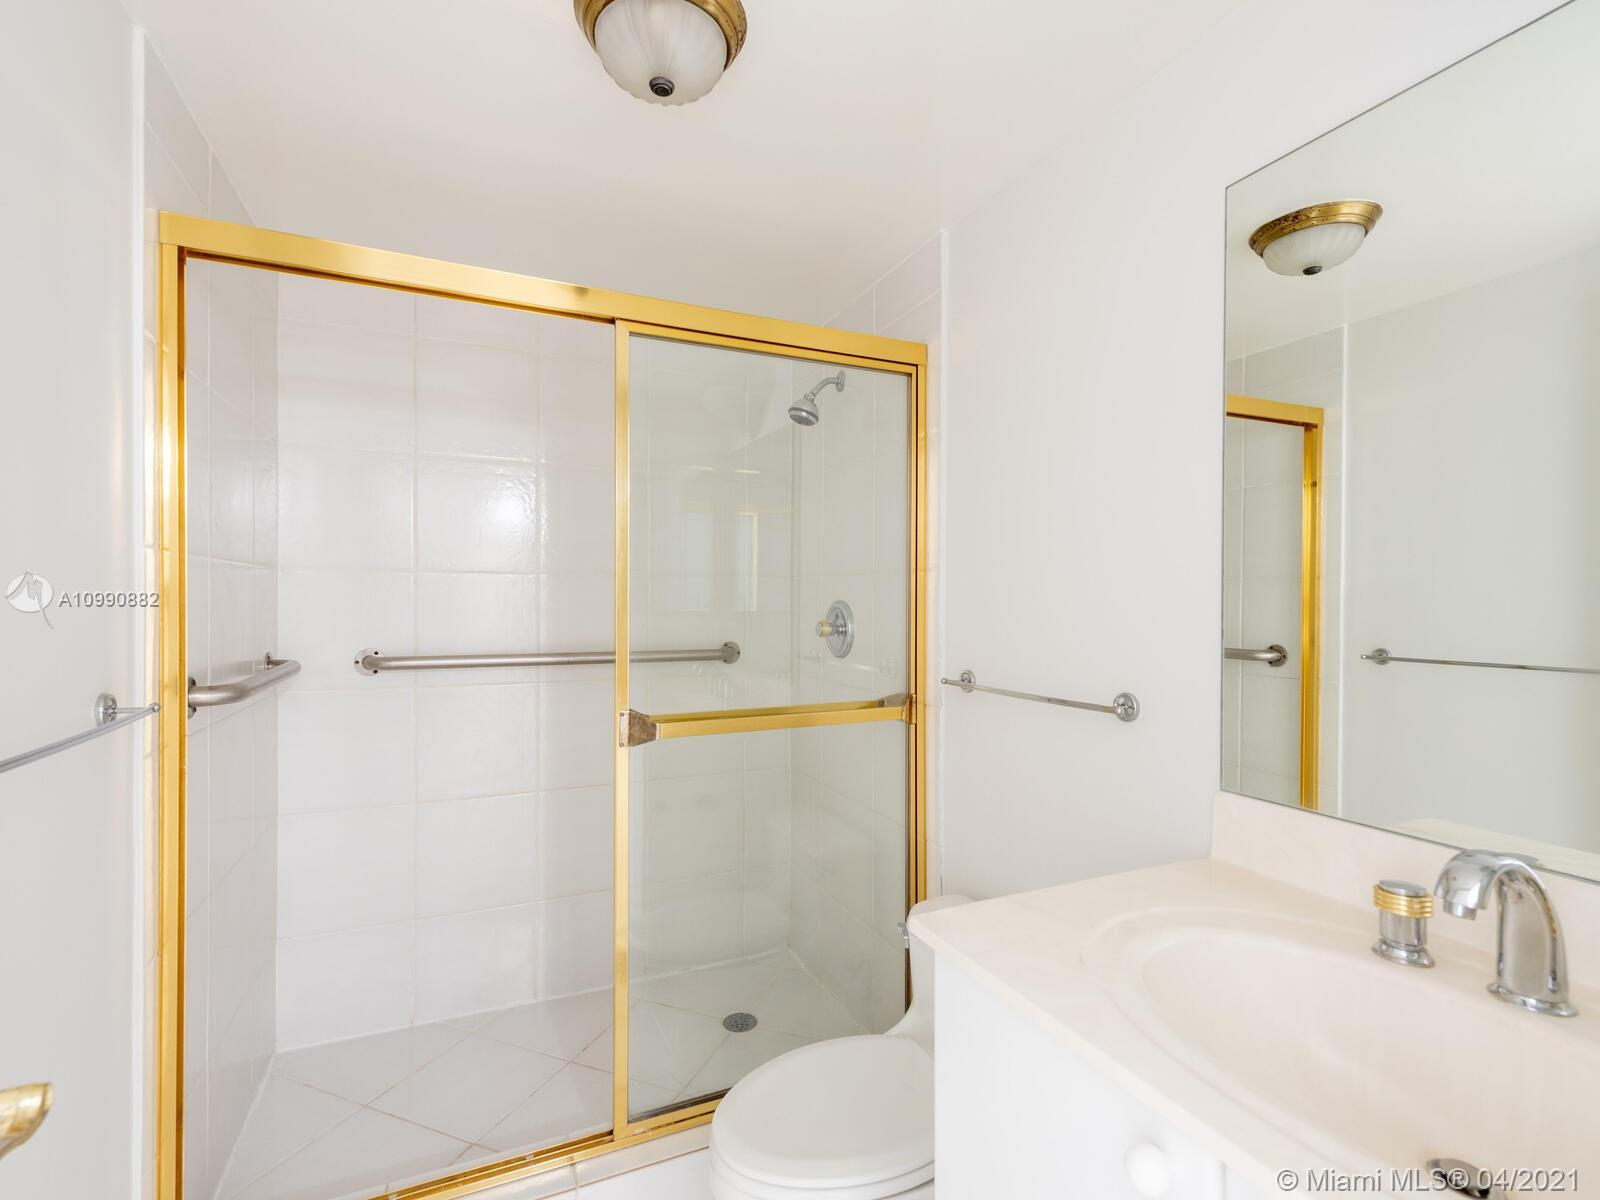 Photo of 8925 Collins Ave #2H, Surfside, Florida, 33154 - Third bedroom.